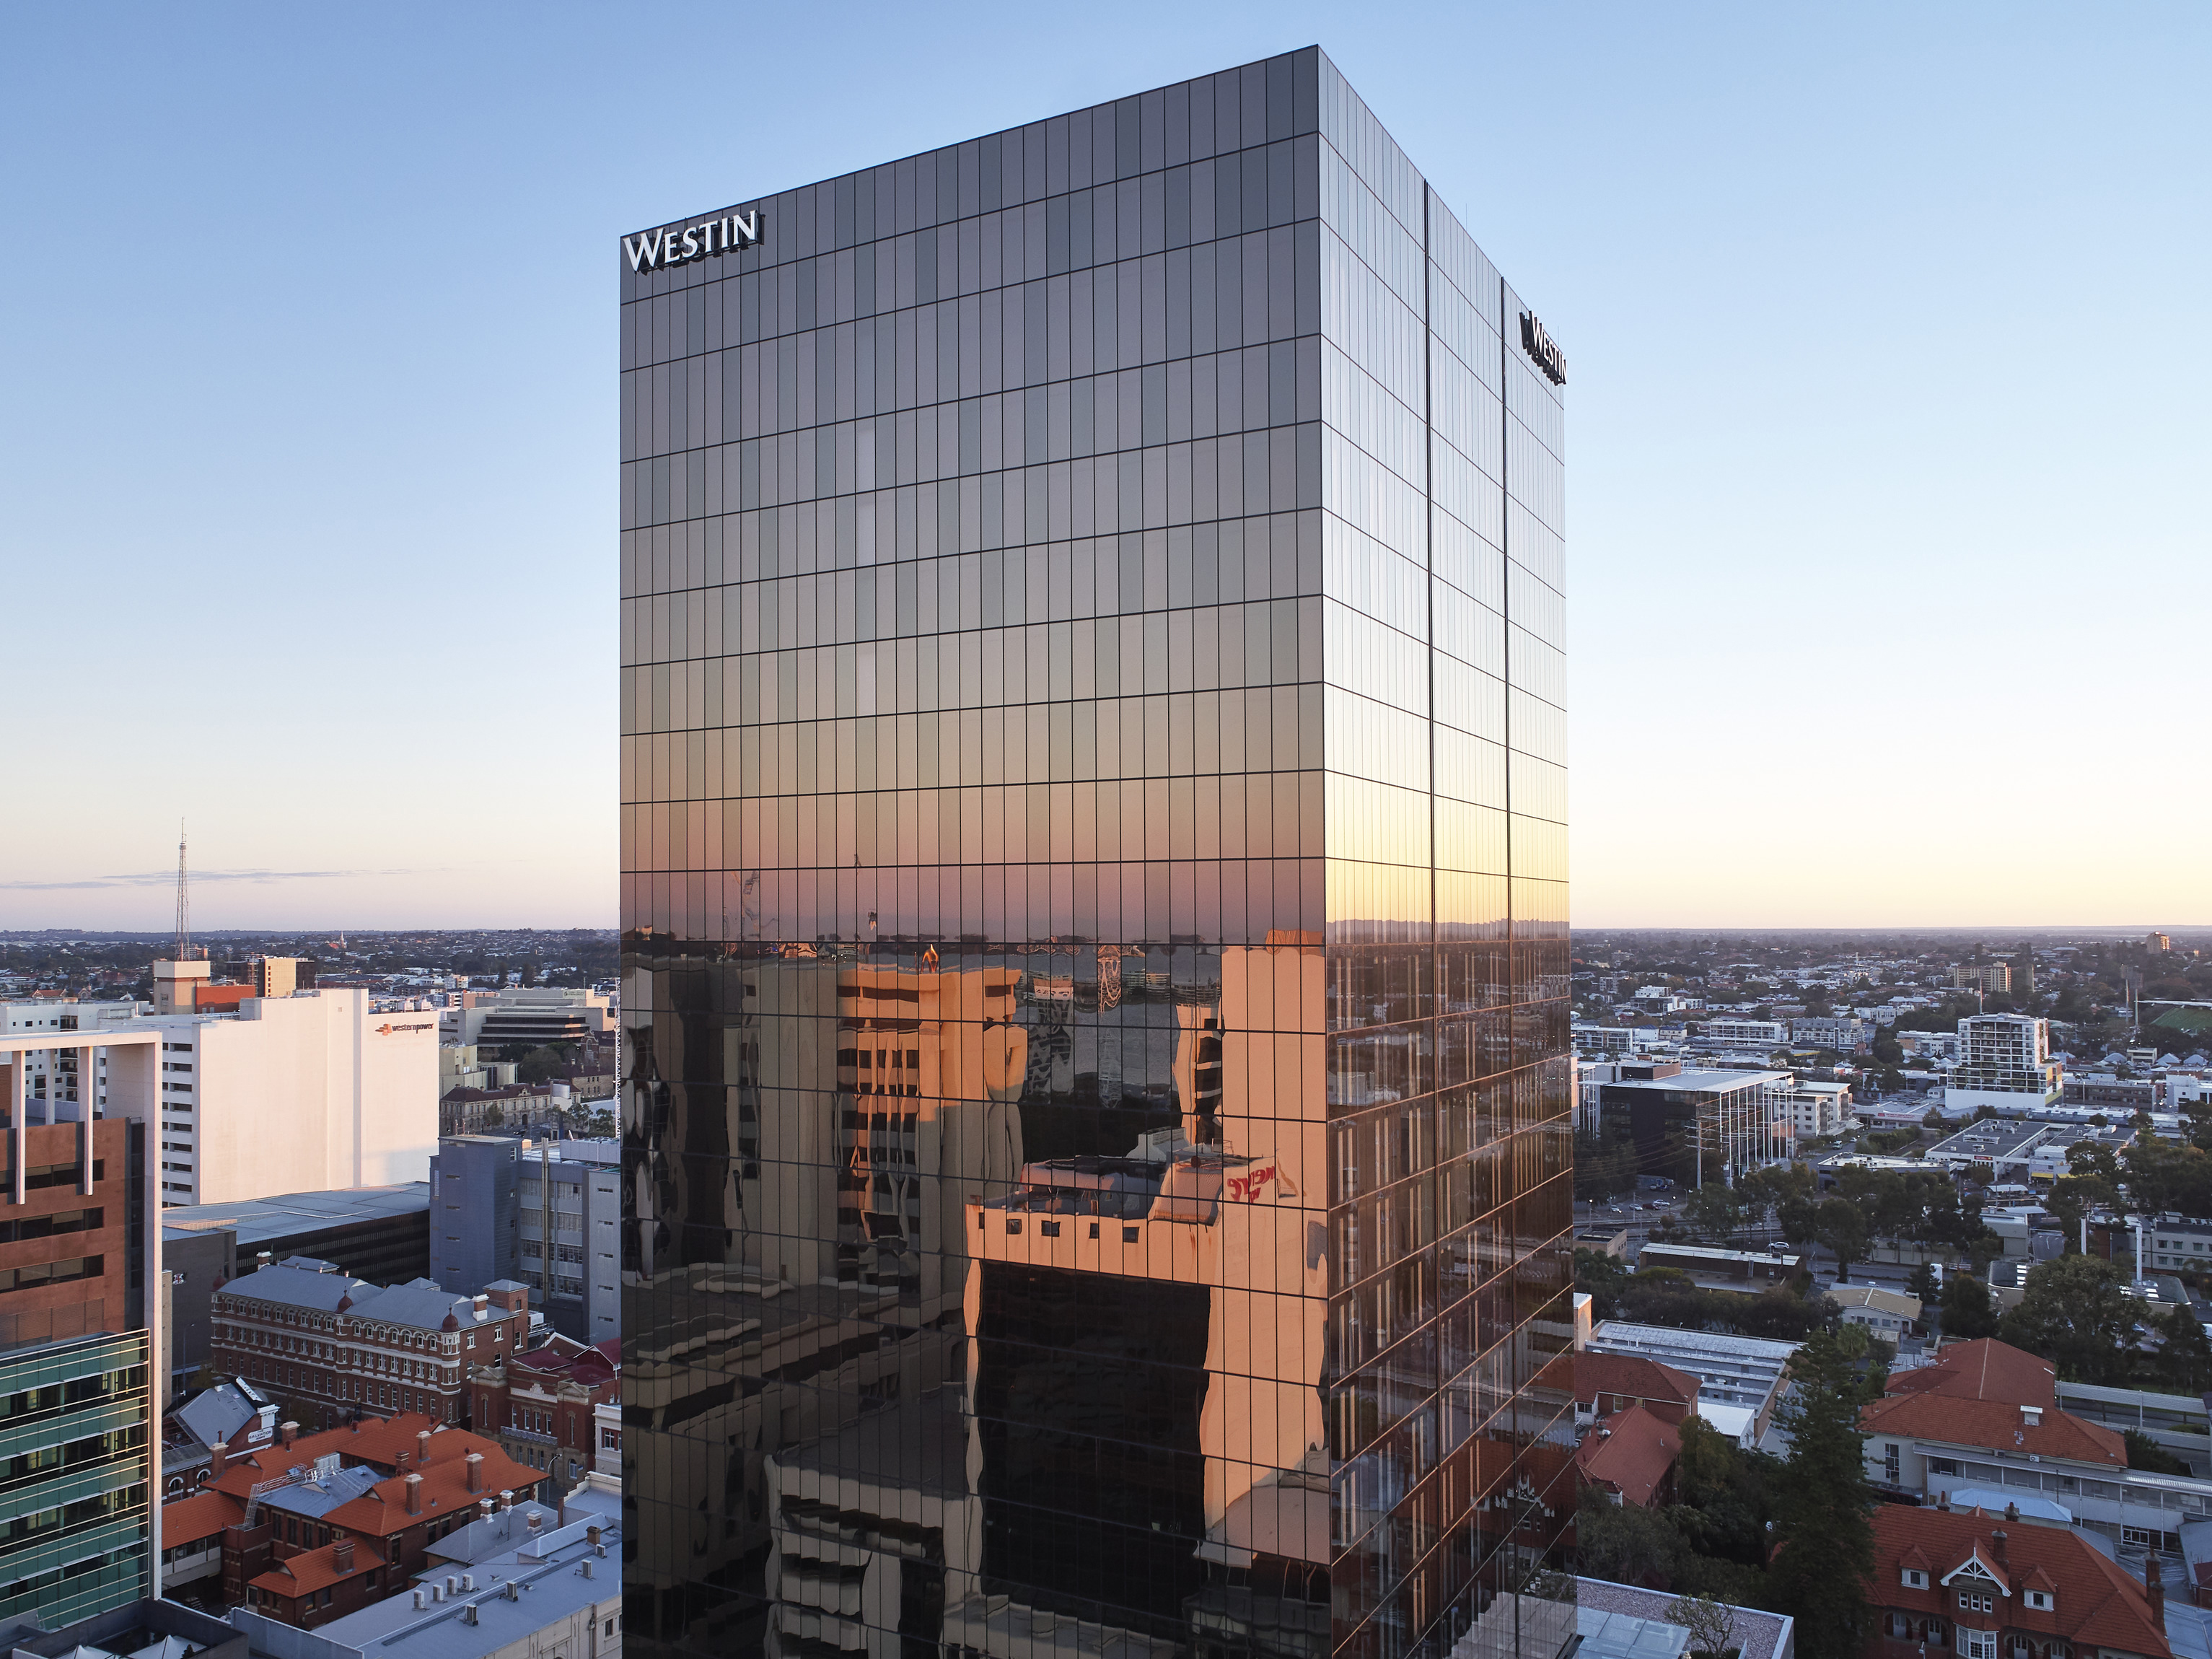 The new Hibernian Place incorporating the five-star Westin hotel along with a thoughtfully curated mix of hospitality operators is the latest 'urban oasis' for Perth residents. Image: Supplied